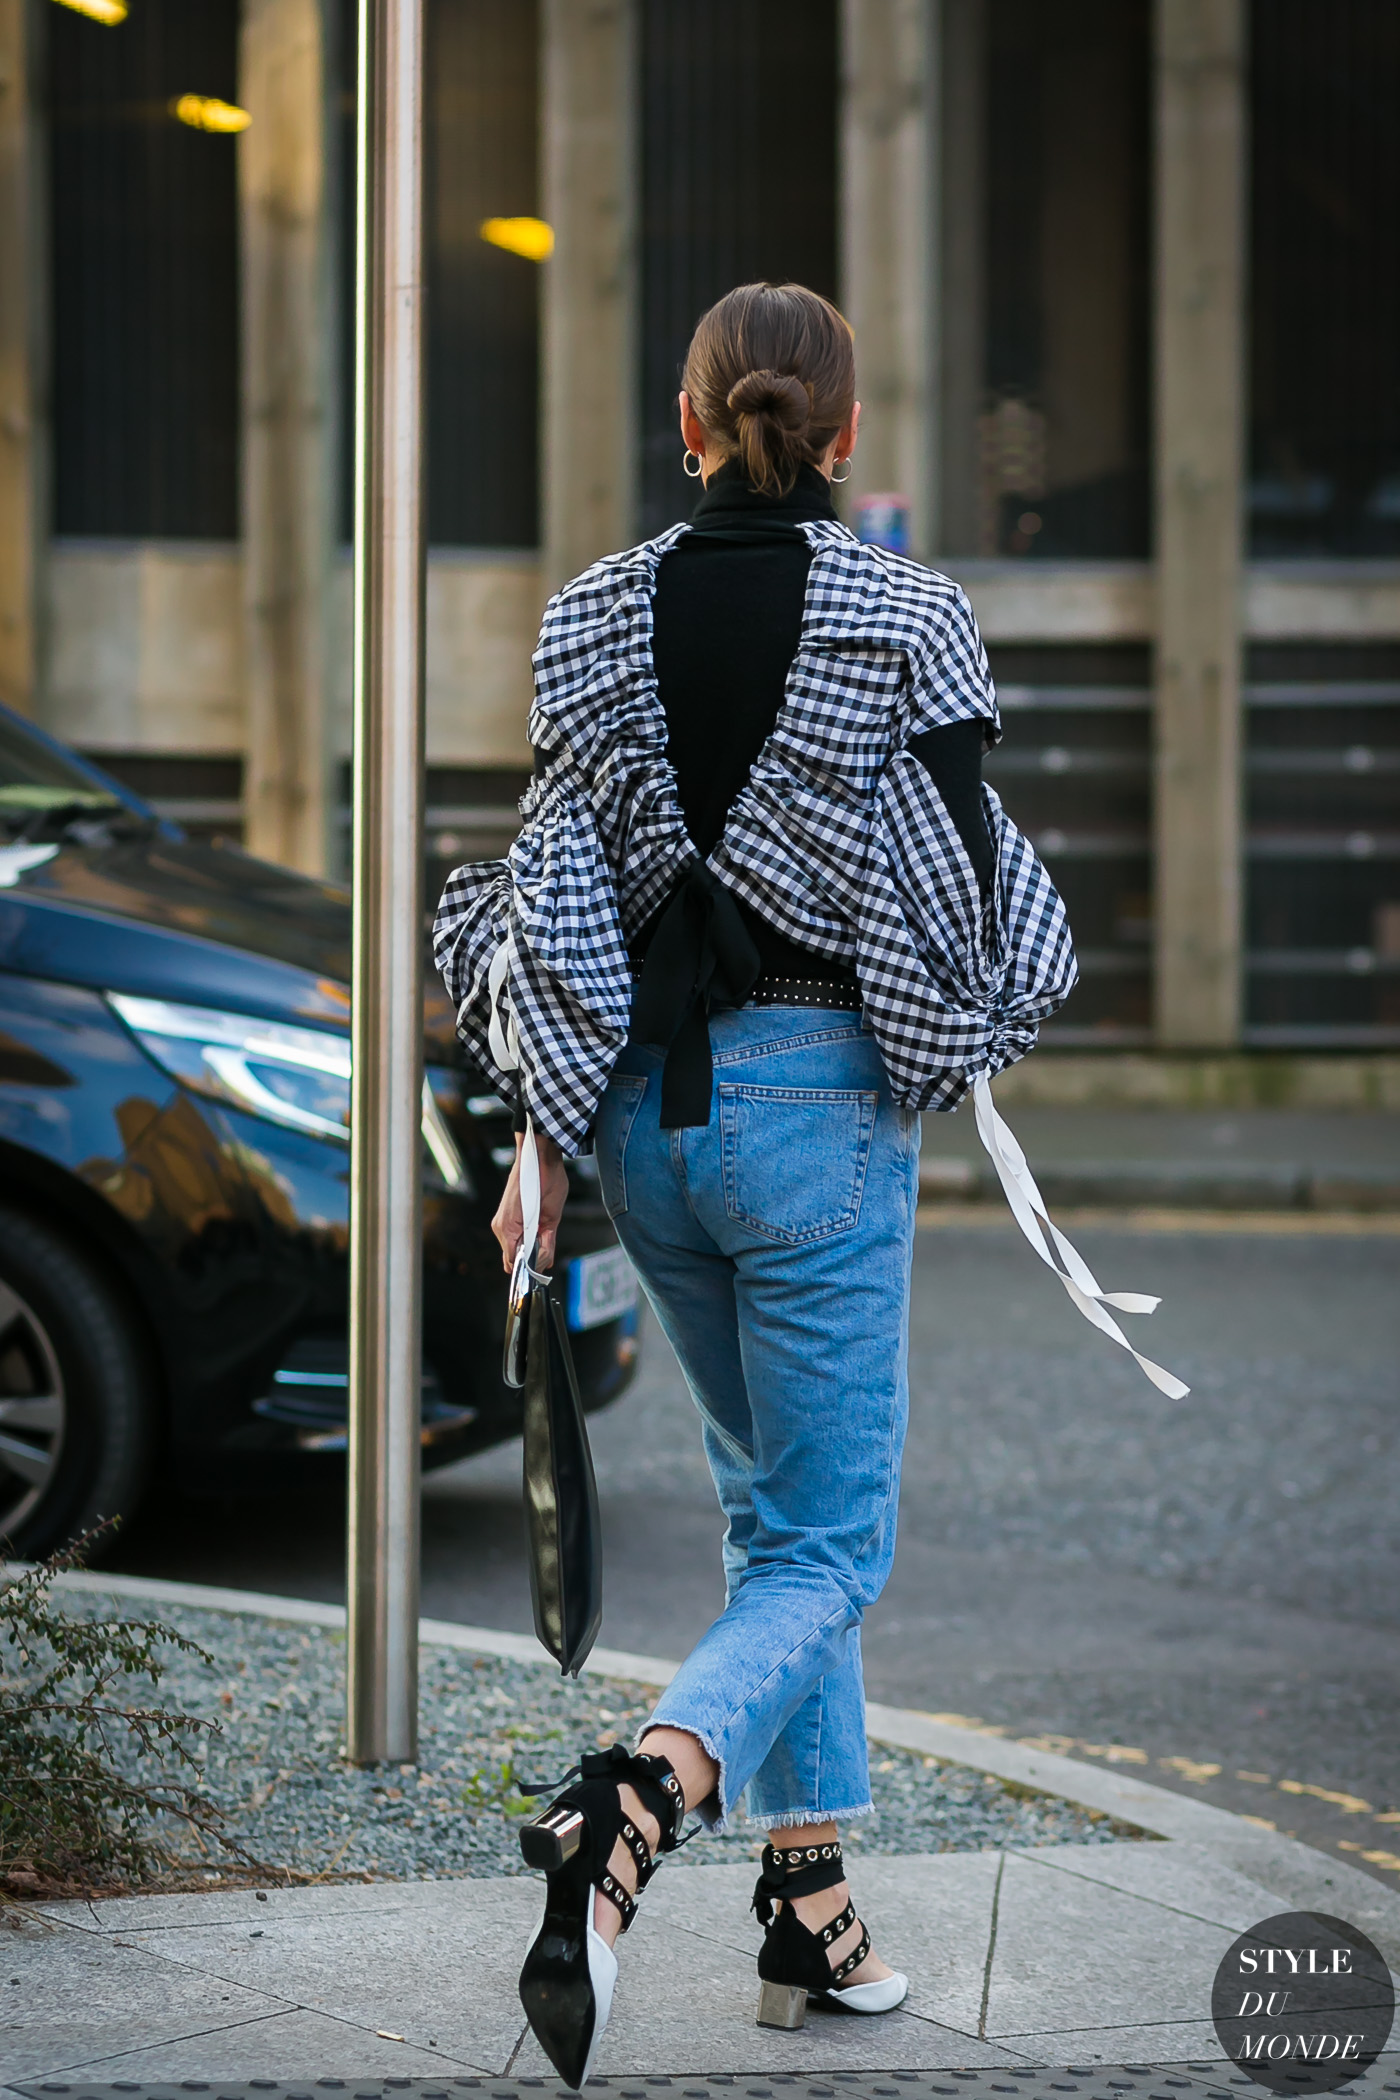 Plaid Blouse by STYLEDUMONDE Street Style Fashion Photography